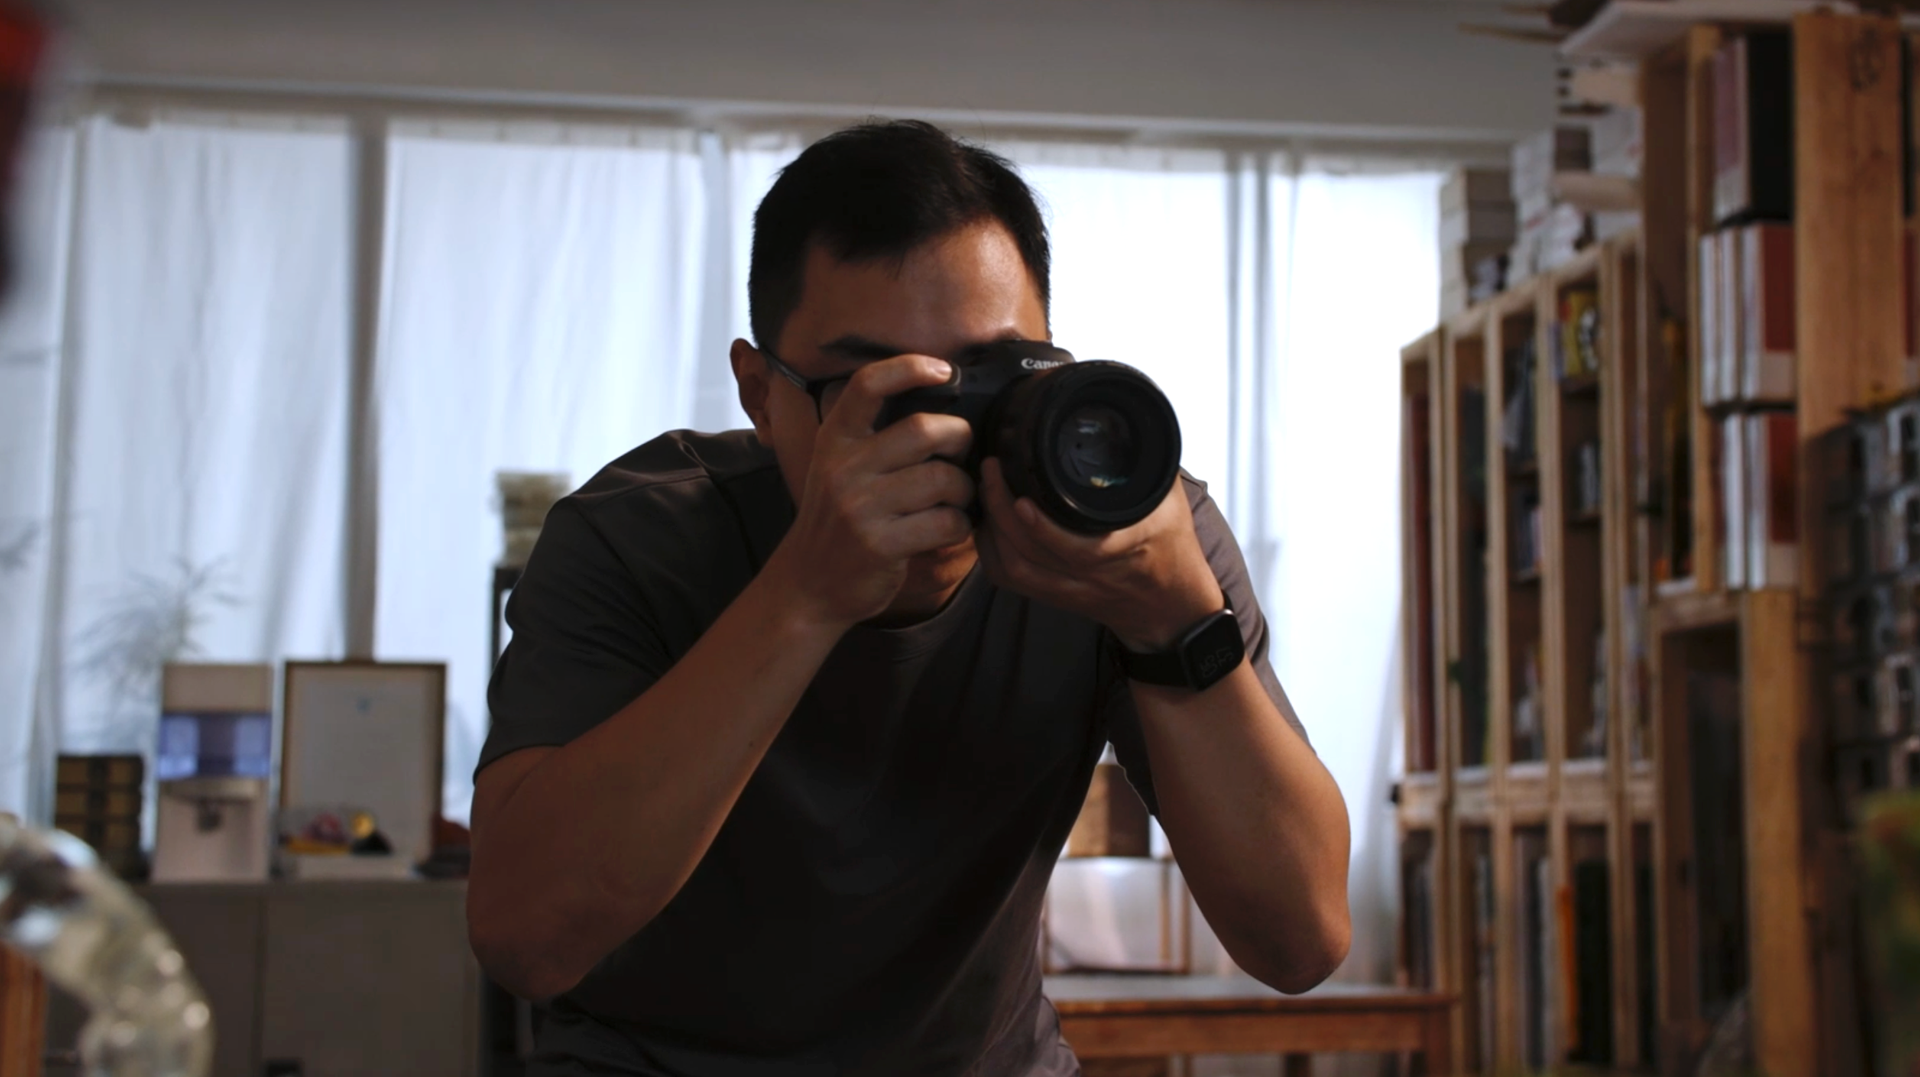 Yeo Kai Wen holding up the Canon EOS R5, showing off its small size and compact frame